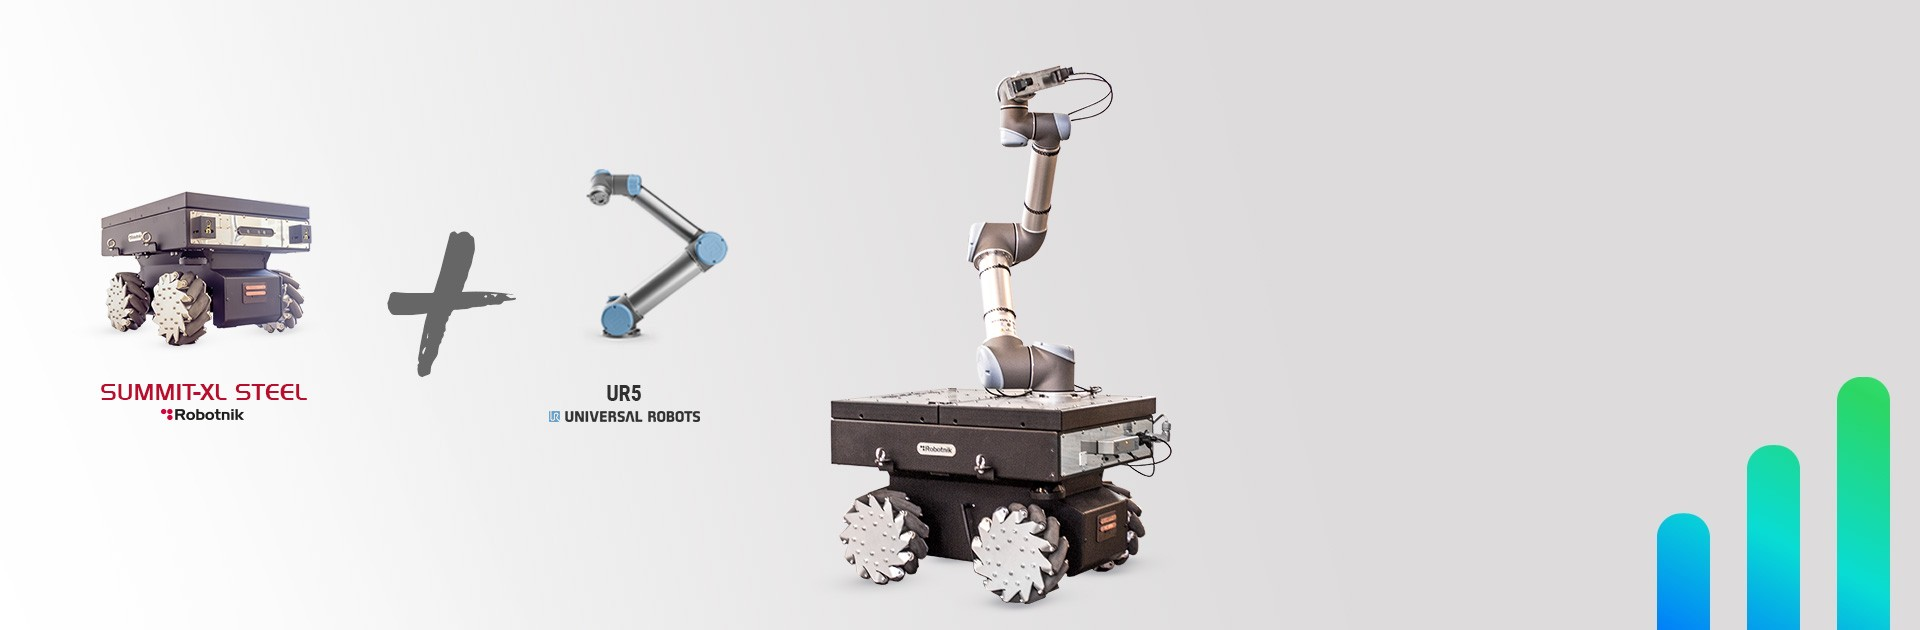 Online store for robotic products supported by ROS - ROS